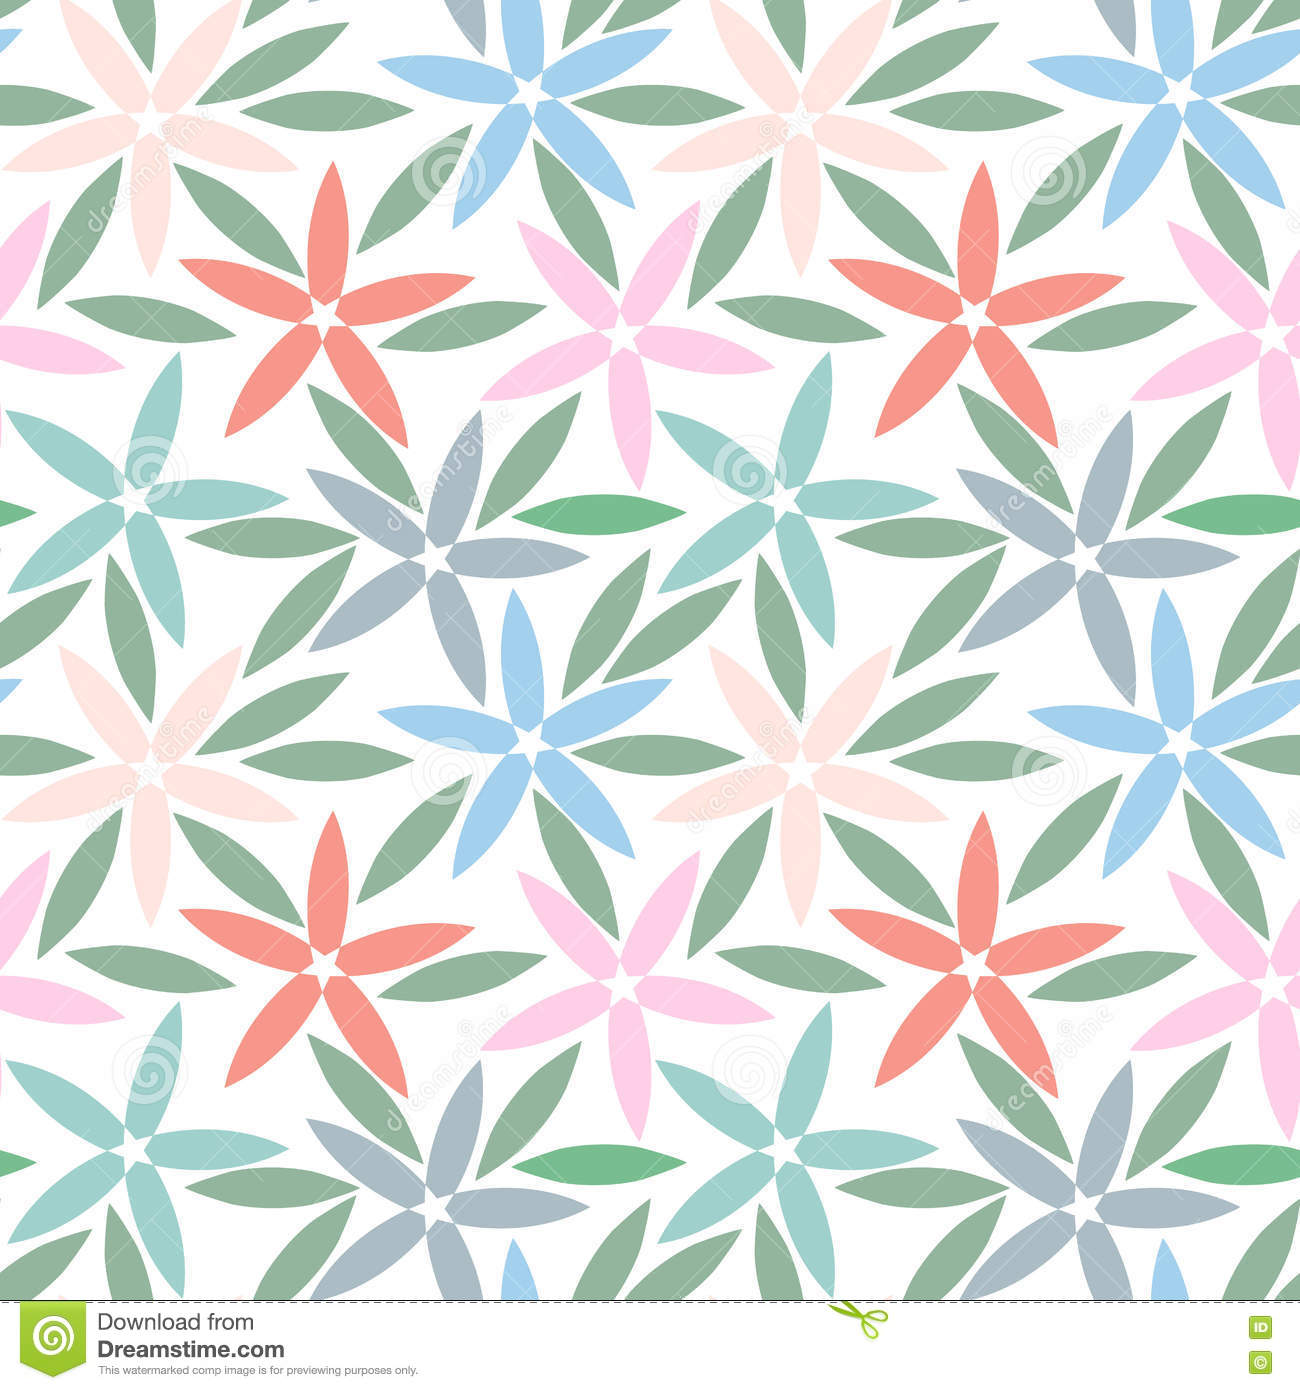 Abstract Seamless Pattern With Simple Flowers Floral Wallpaper Cute And Leaves Ornate Petal